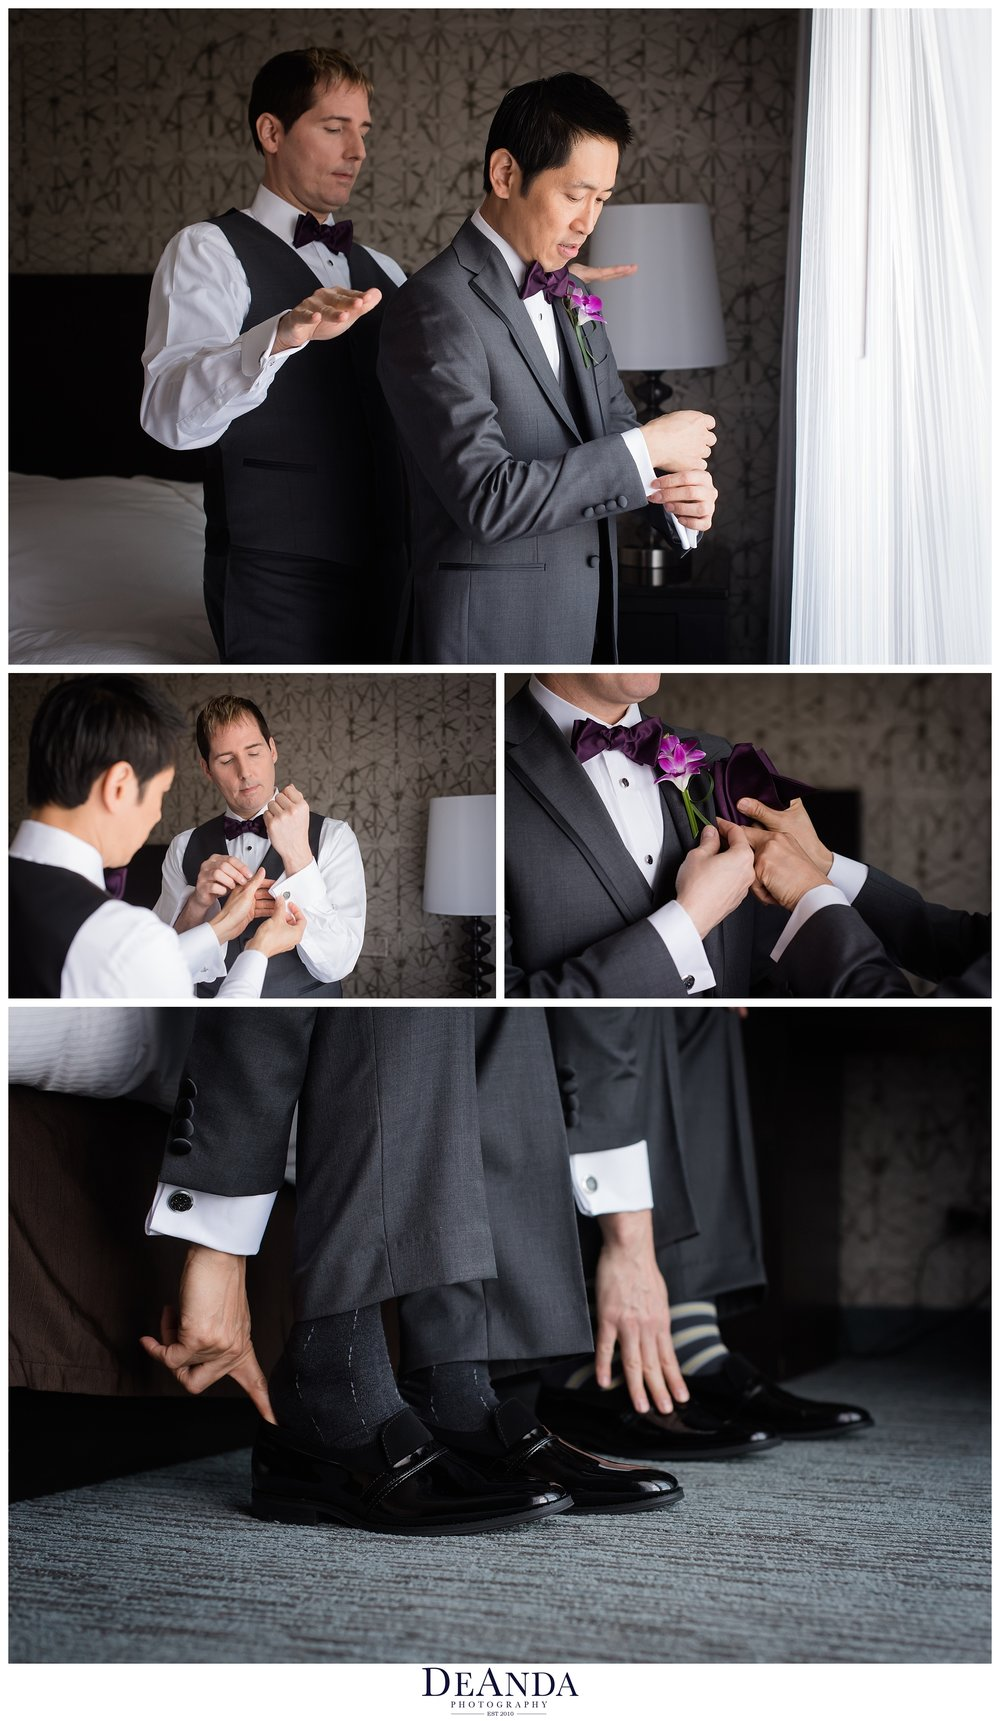 getting ready to be married, two grooms